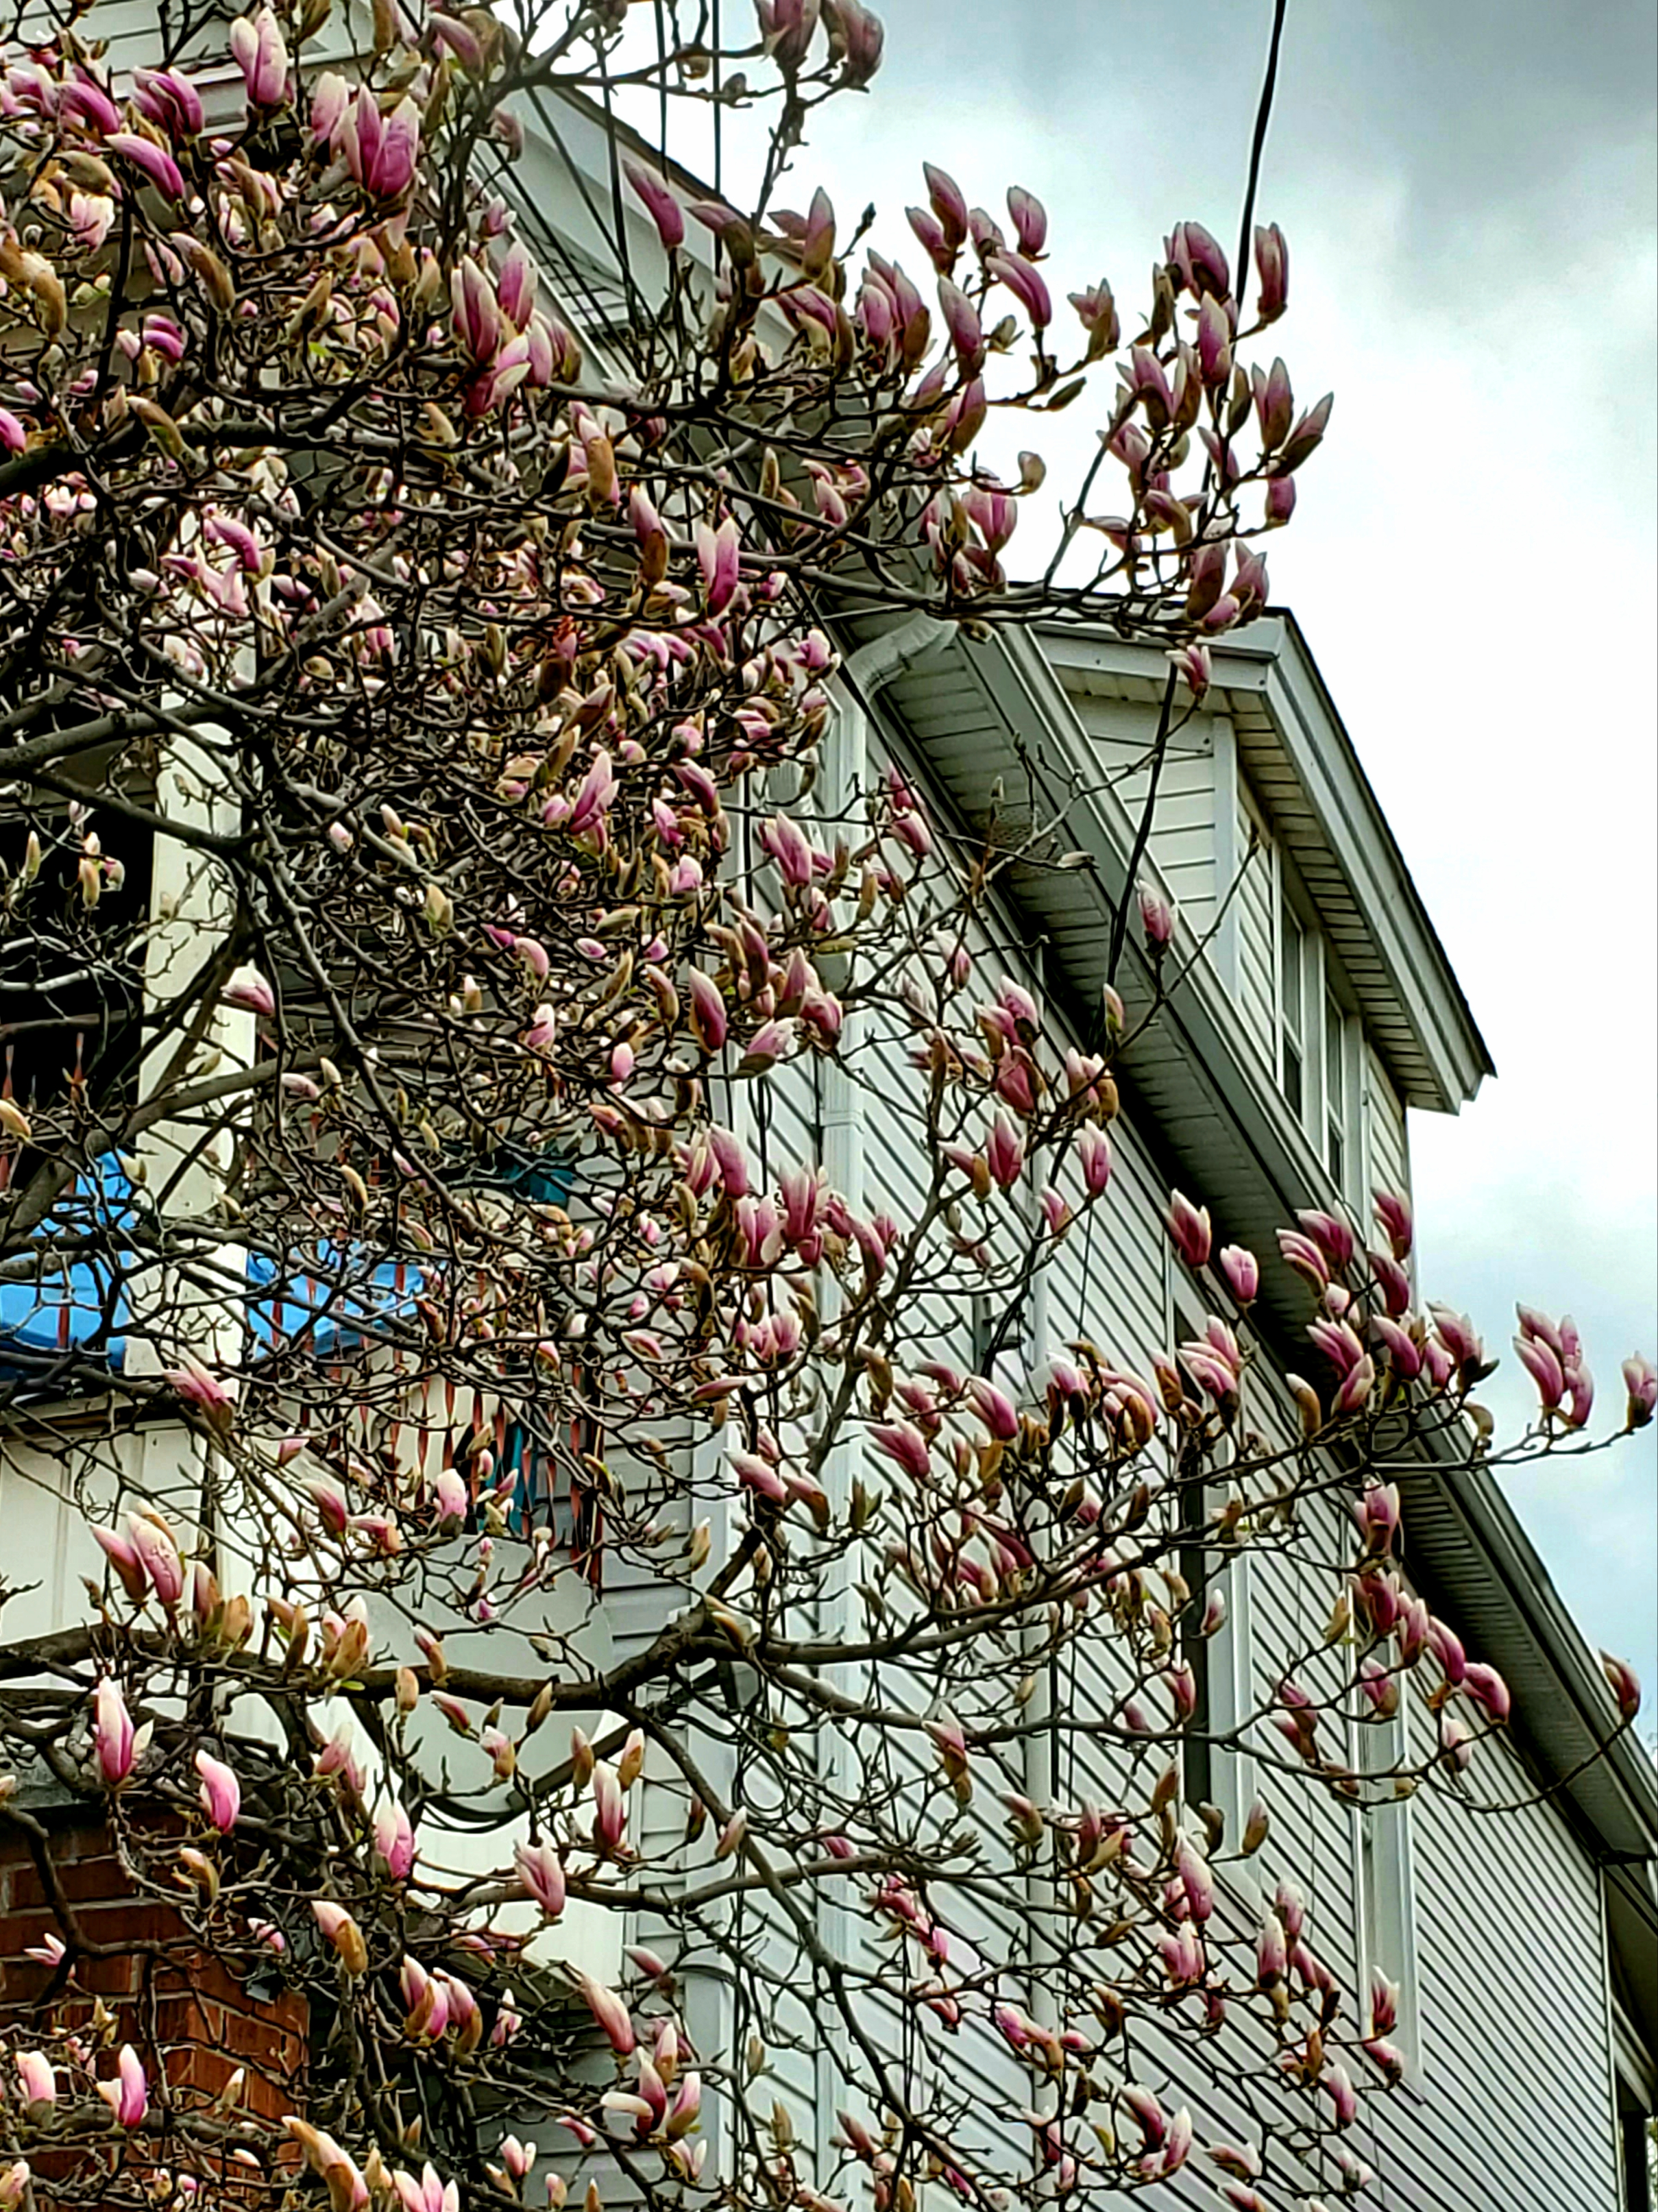 Magnolias getting ready to bloom near Lottridge and Barton